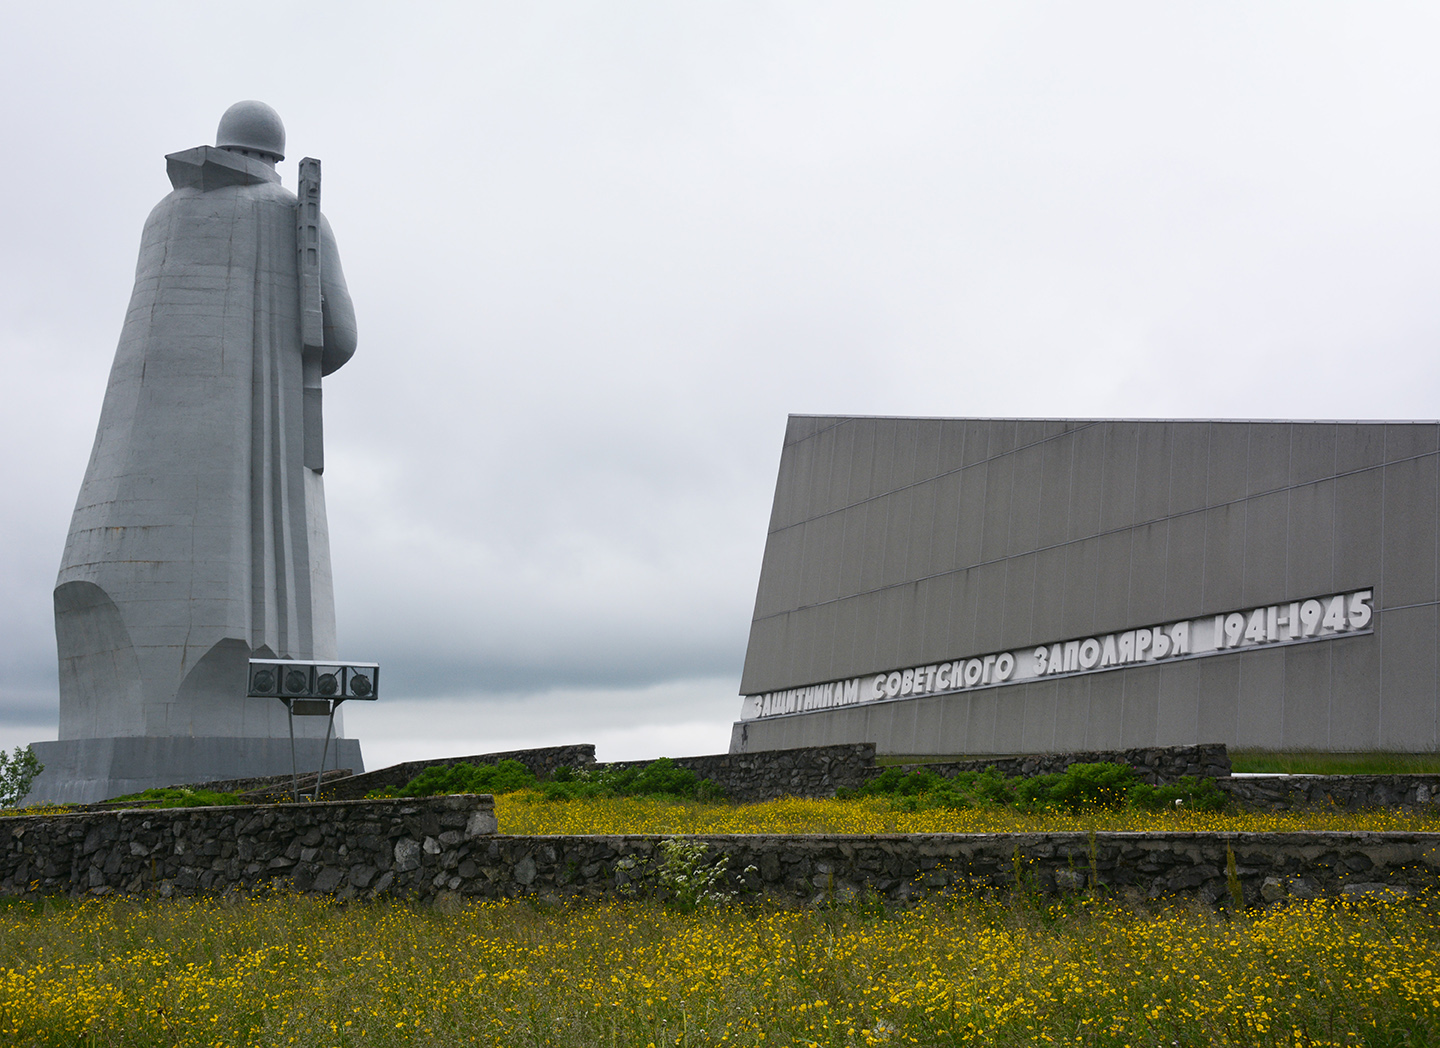 The monument to Alyosha in Murmansk, Russia, honors soldiers of the Second World War.